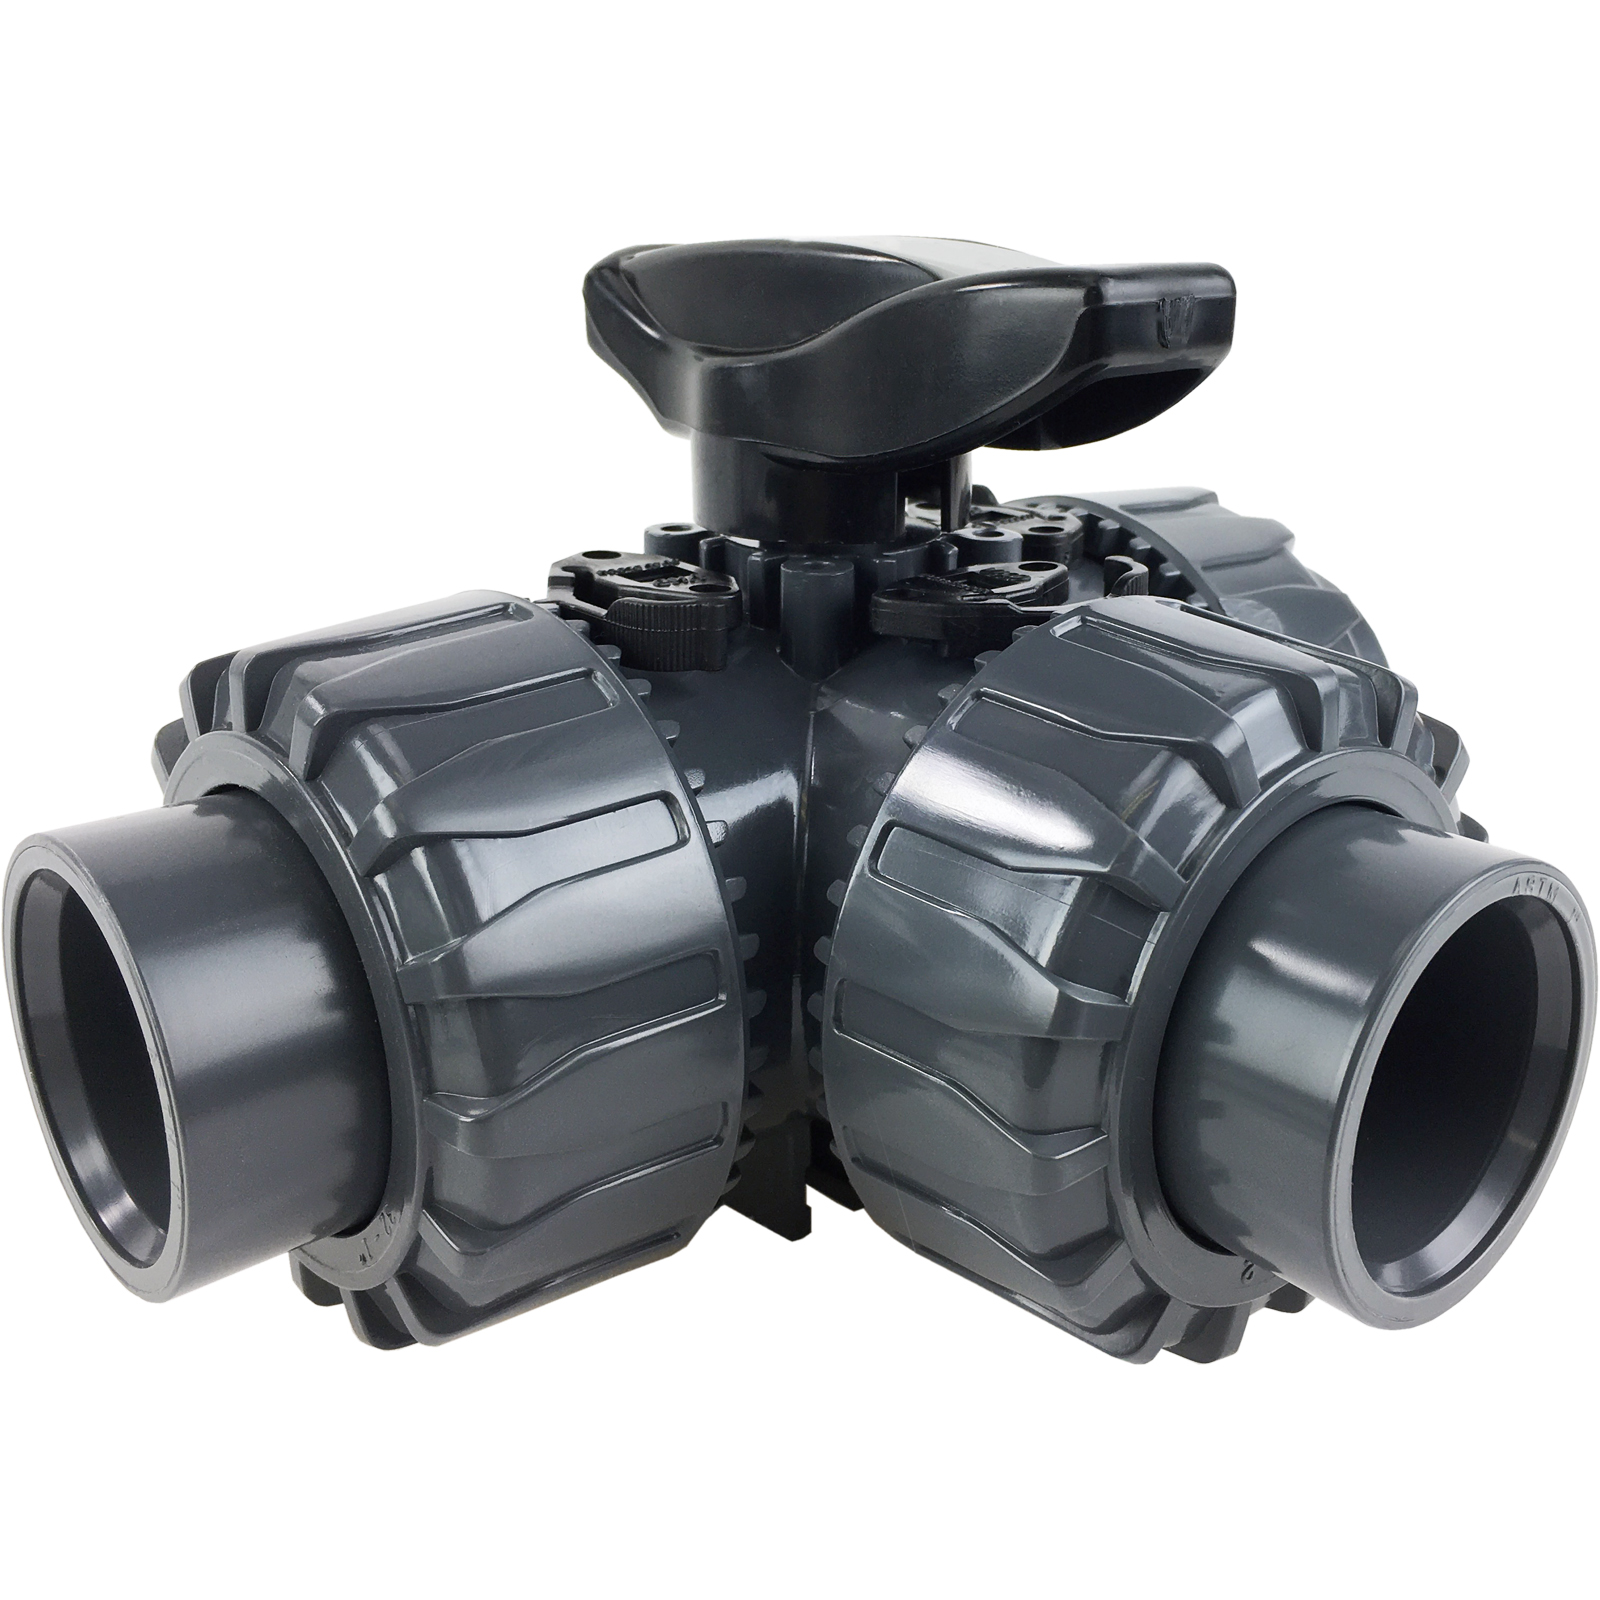 "1"" 3-Way T-port PVC Ball Valve - EPDM/Teflon Seals"